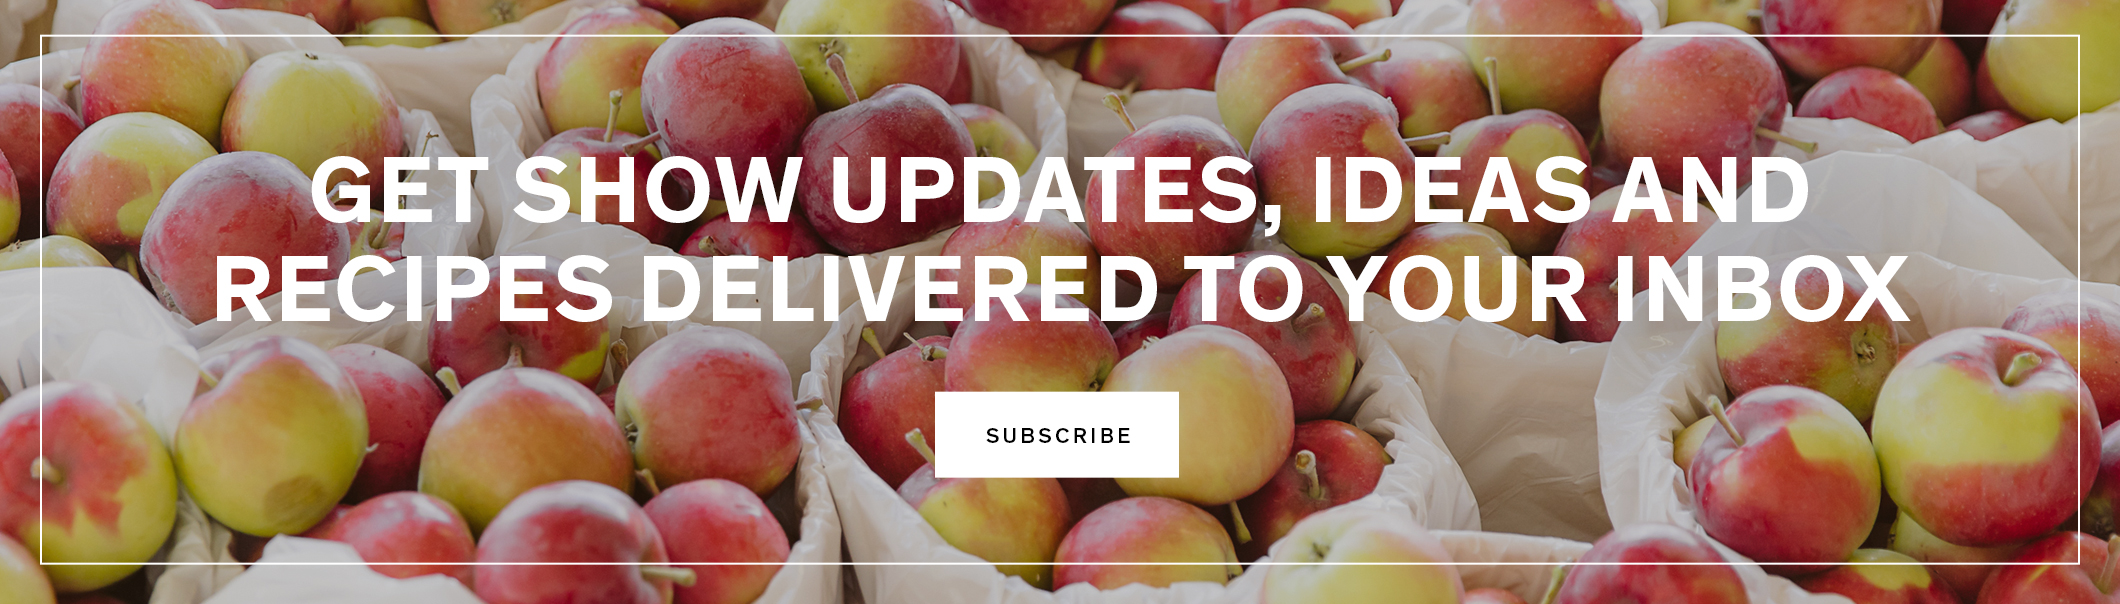 Get show updates, ideas and recipes delivered to your inbox.